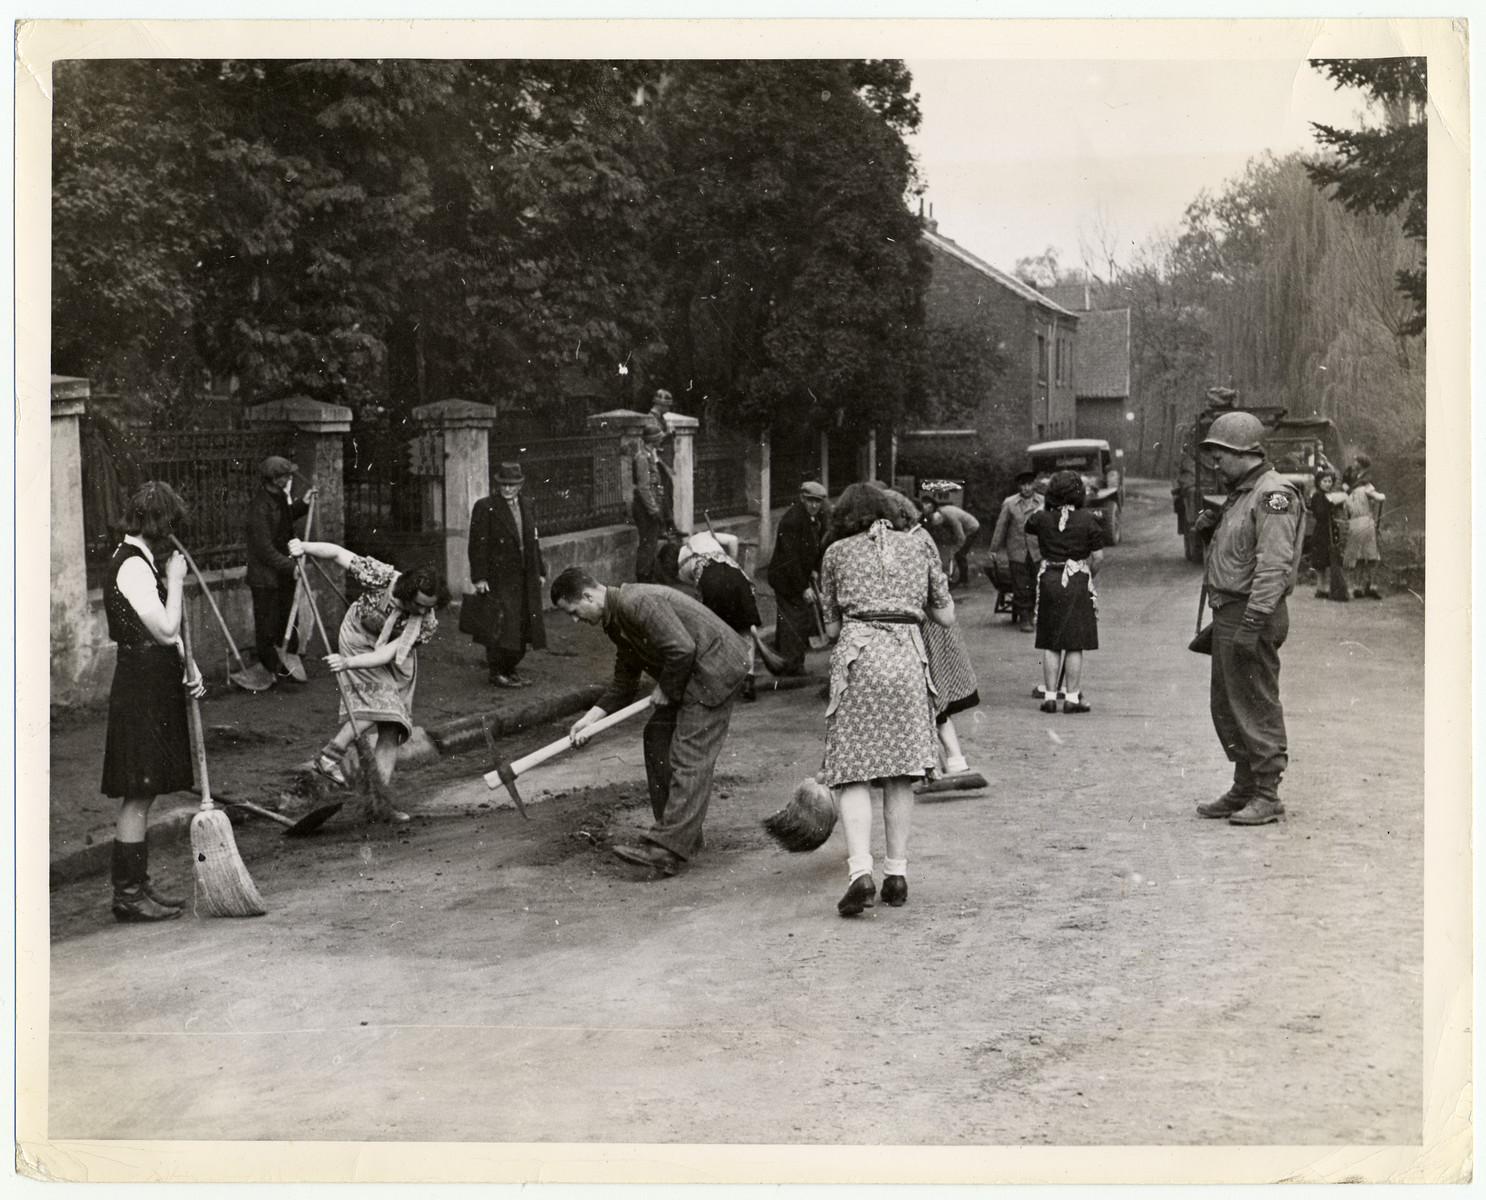 An American soldier supervises German civilians forced to clean the streets of Herzogenrath, Germany, in compliance with orders issued by the Military Government of the town.   Herzogenrath is five miles north of Aachen on the Dutch frontier.   U.S. Signal Corps photo ETO-HQ-45-32490